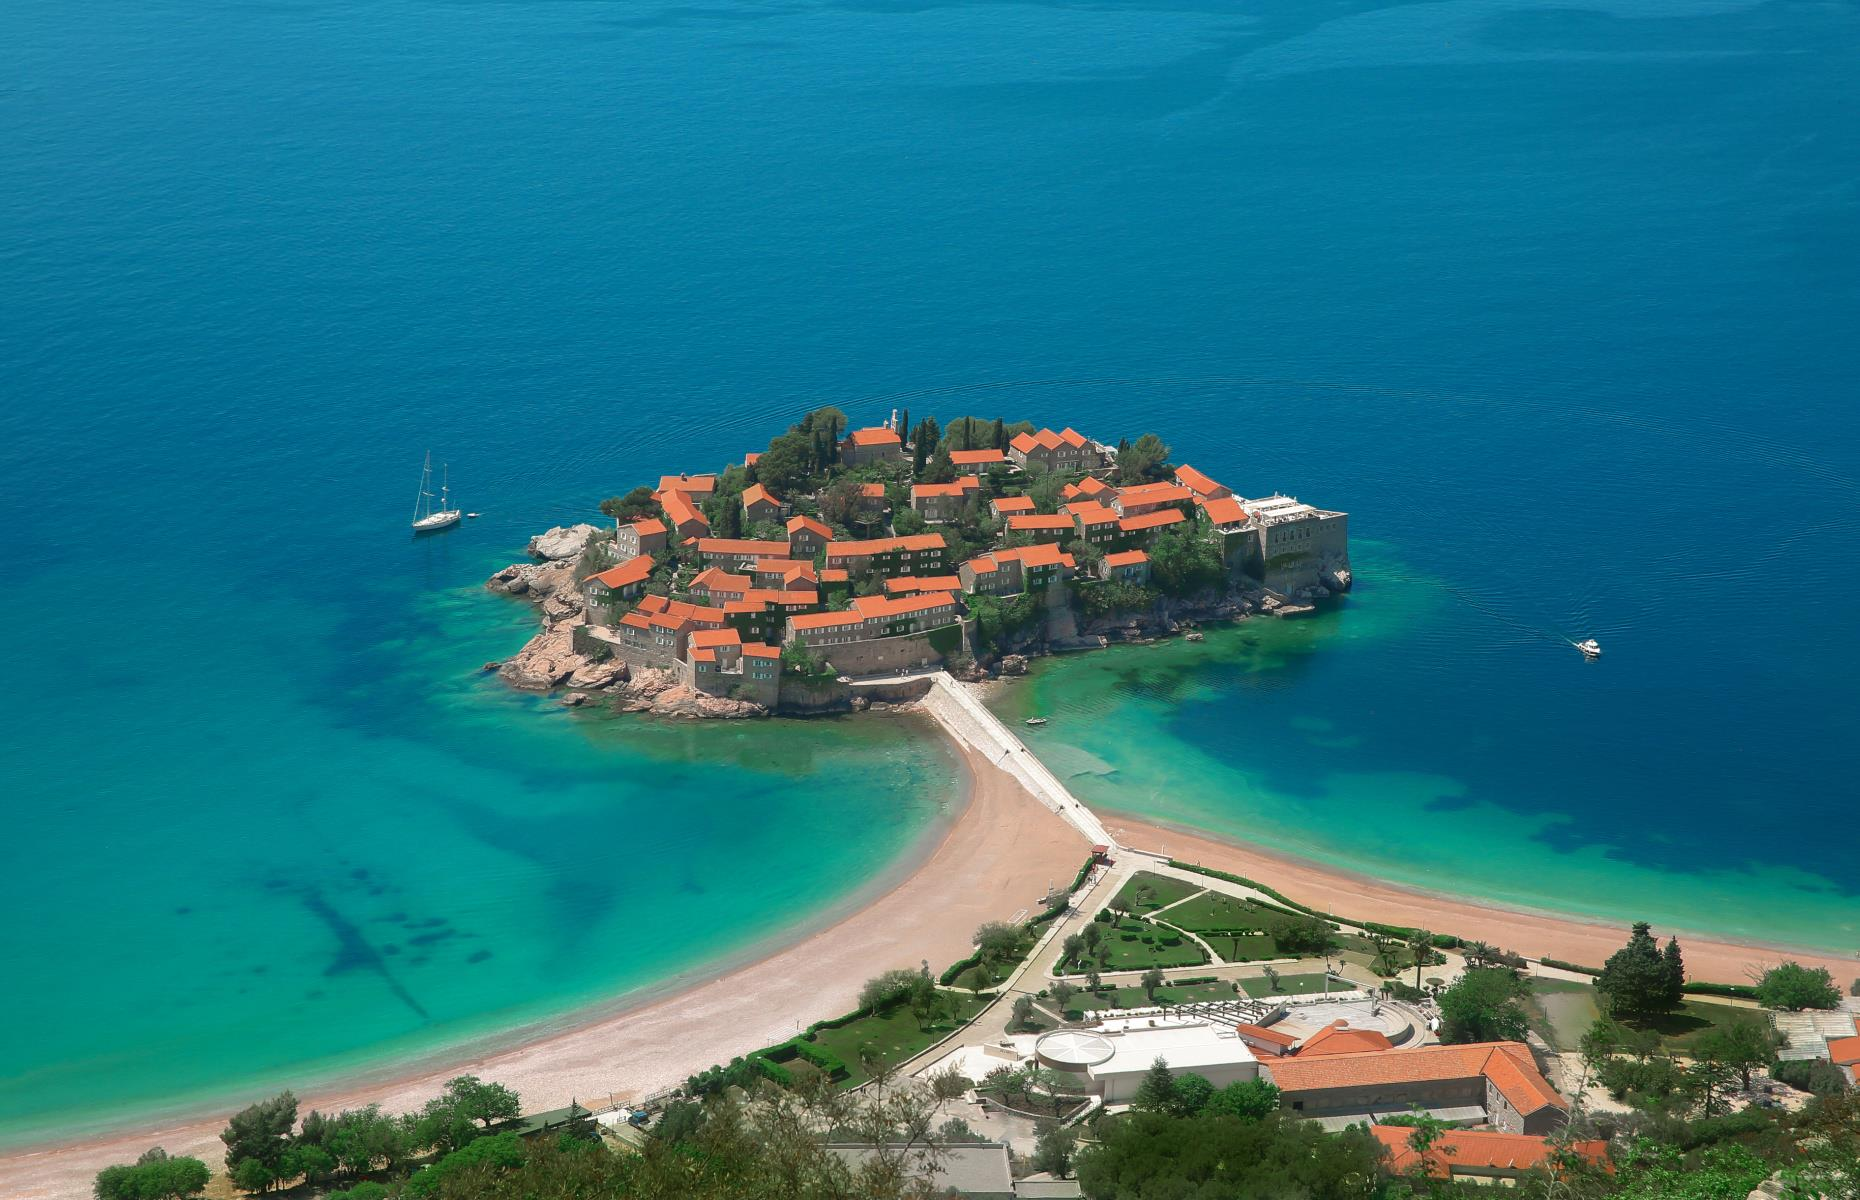 Slide 20 of 31: A small islet off of Montenegro's Adriatic coast, Sveti Stefan is occupied by a ritzy 5-star resort. The public beach on the mainland is this extraordinary site's main attraction, where sunbathers can lie on pink pebble sand and gaze upon the luxurious accommodations.